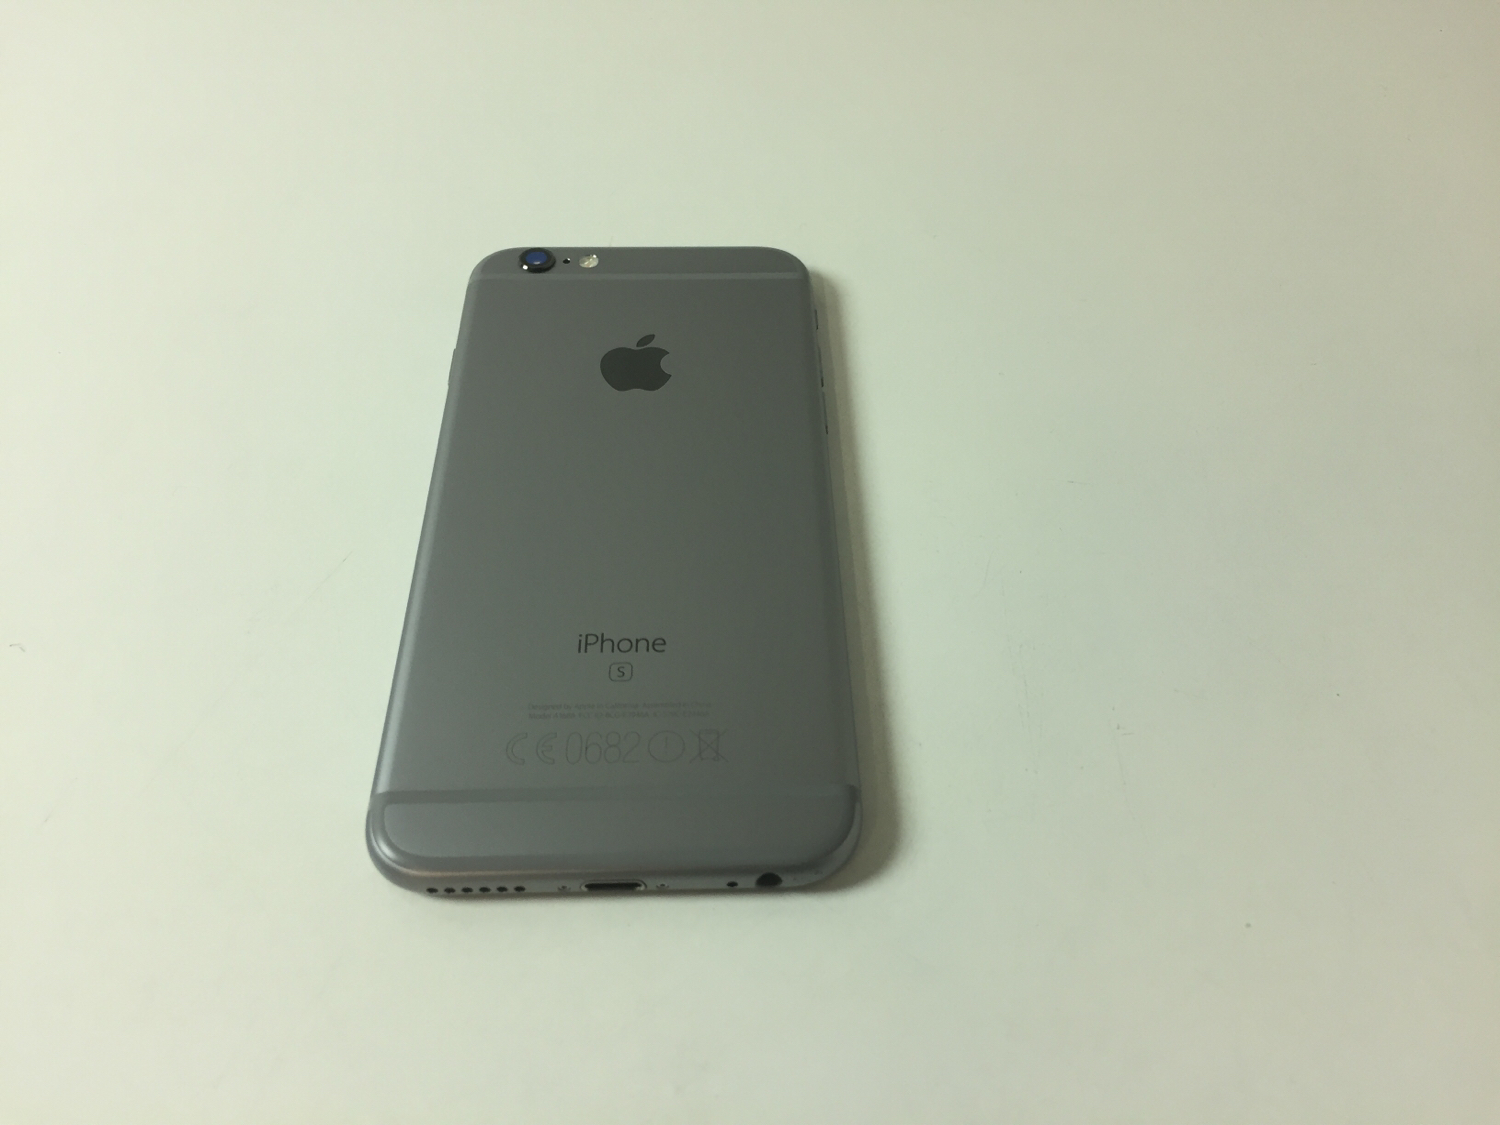 iPhone 6S 16GB, 16 GB, Gray, Afbeelding 2